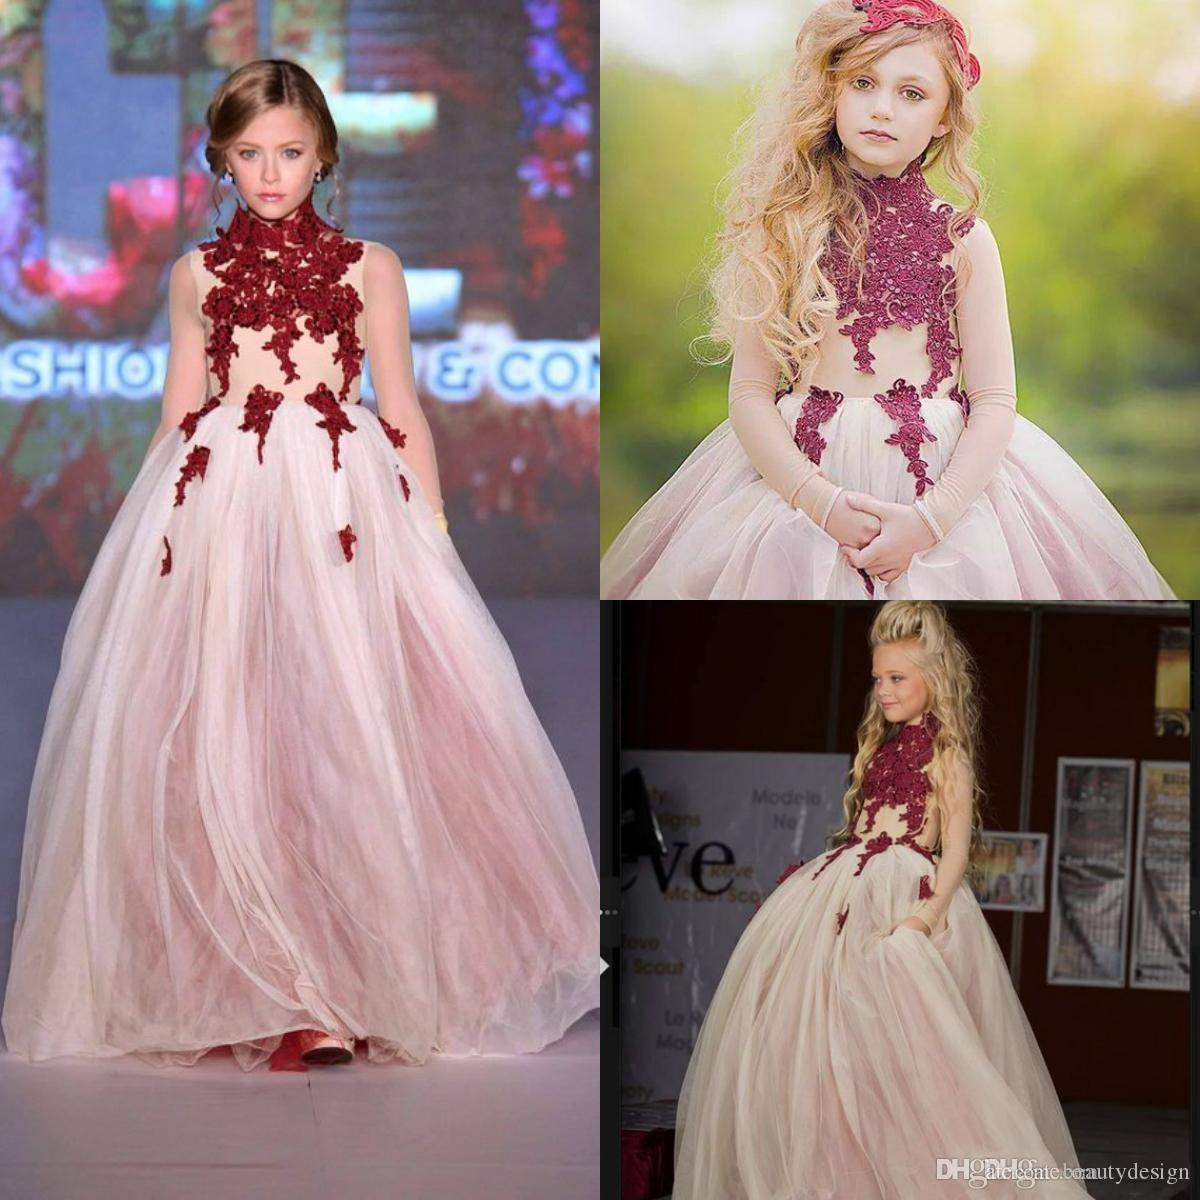 A Line High Neck Flowers Girls Dresses Burgundy Lace Applique Long Sleeve Teens Princess Pageant Gowns Prom Wedding Party Dress Custom